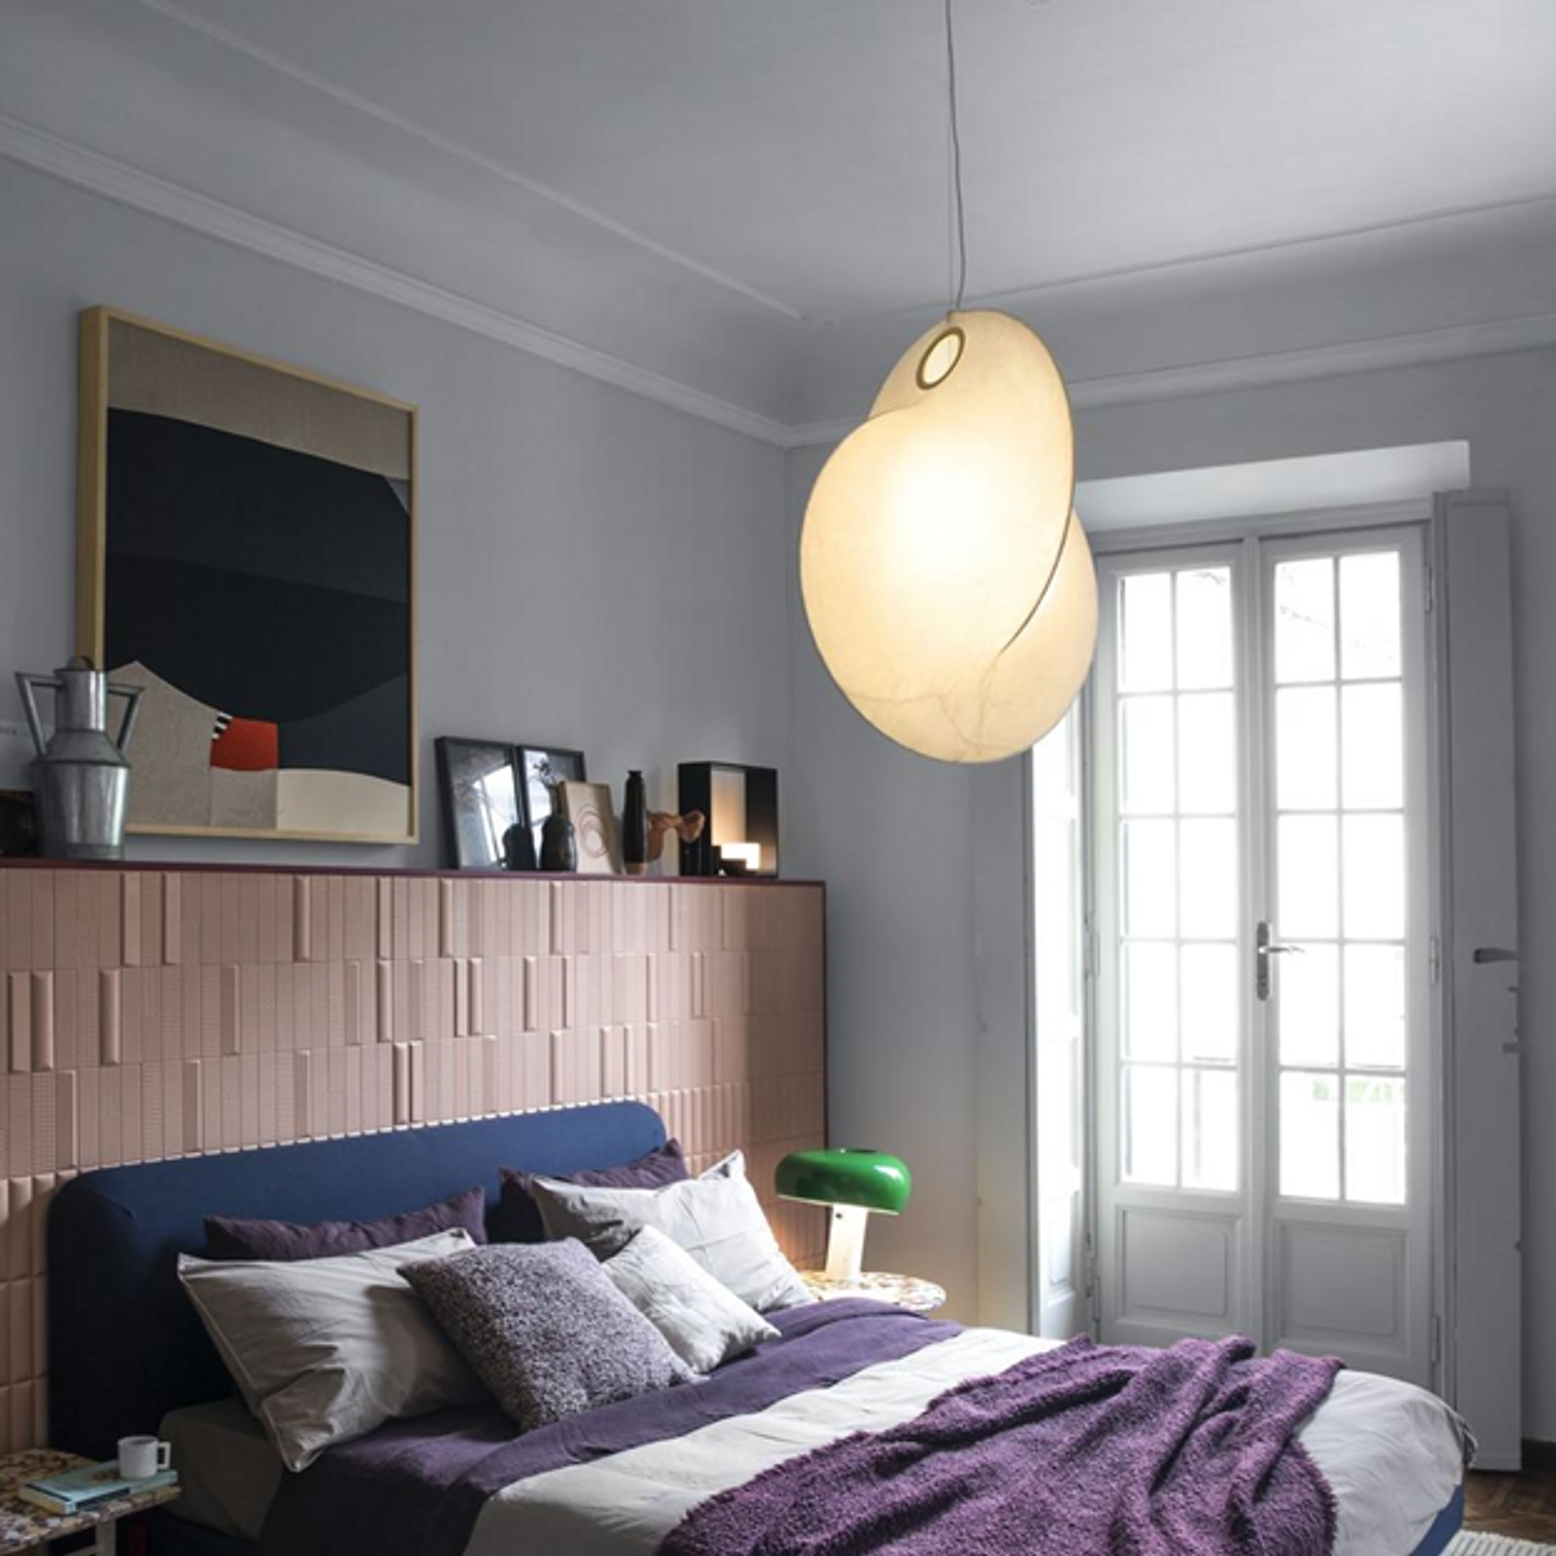 How To Buy Modern Pendant Lighting – Everything You Need To Know